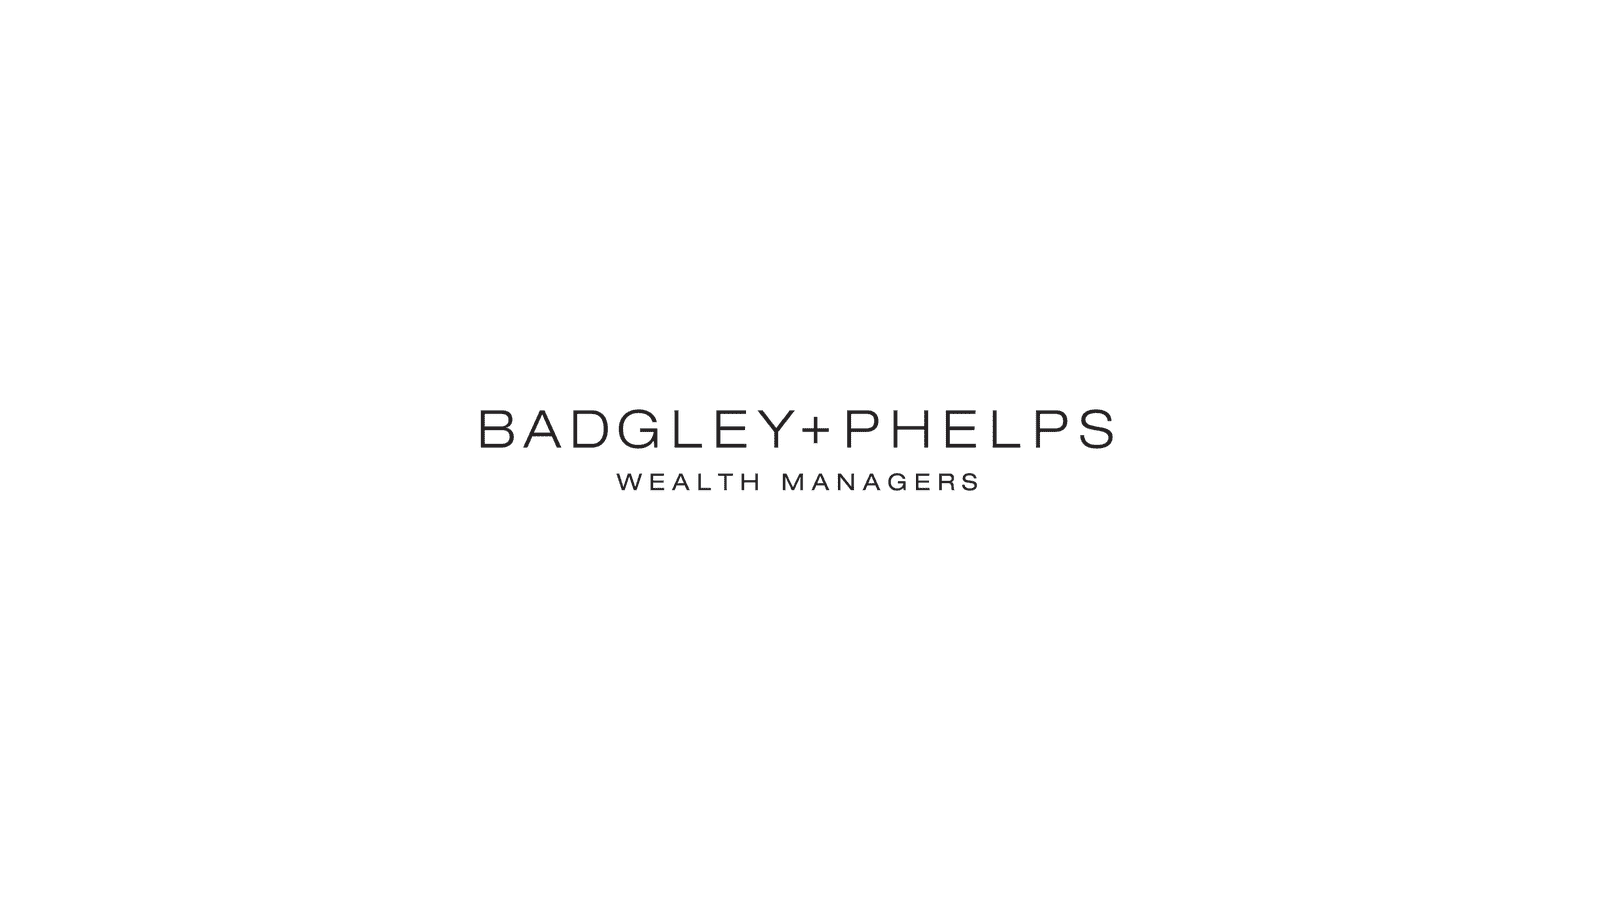 badgley phelps bell investment